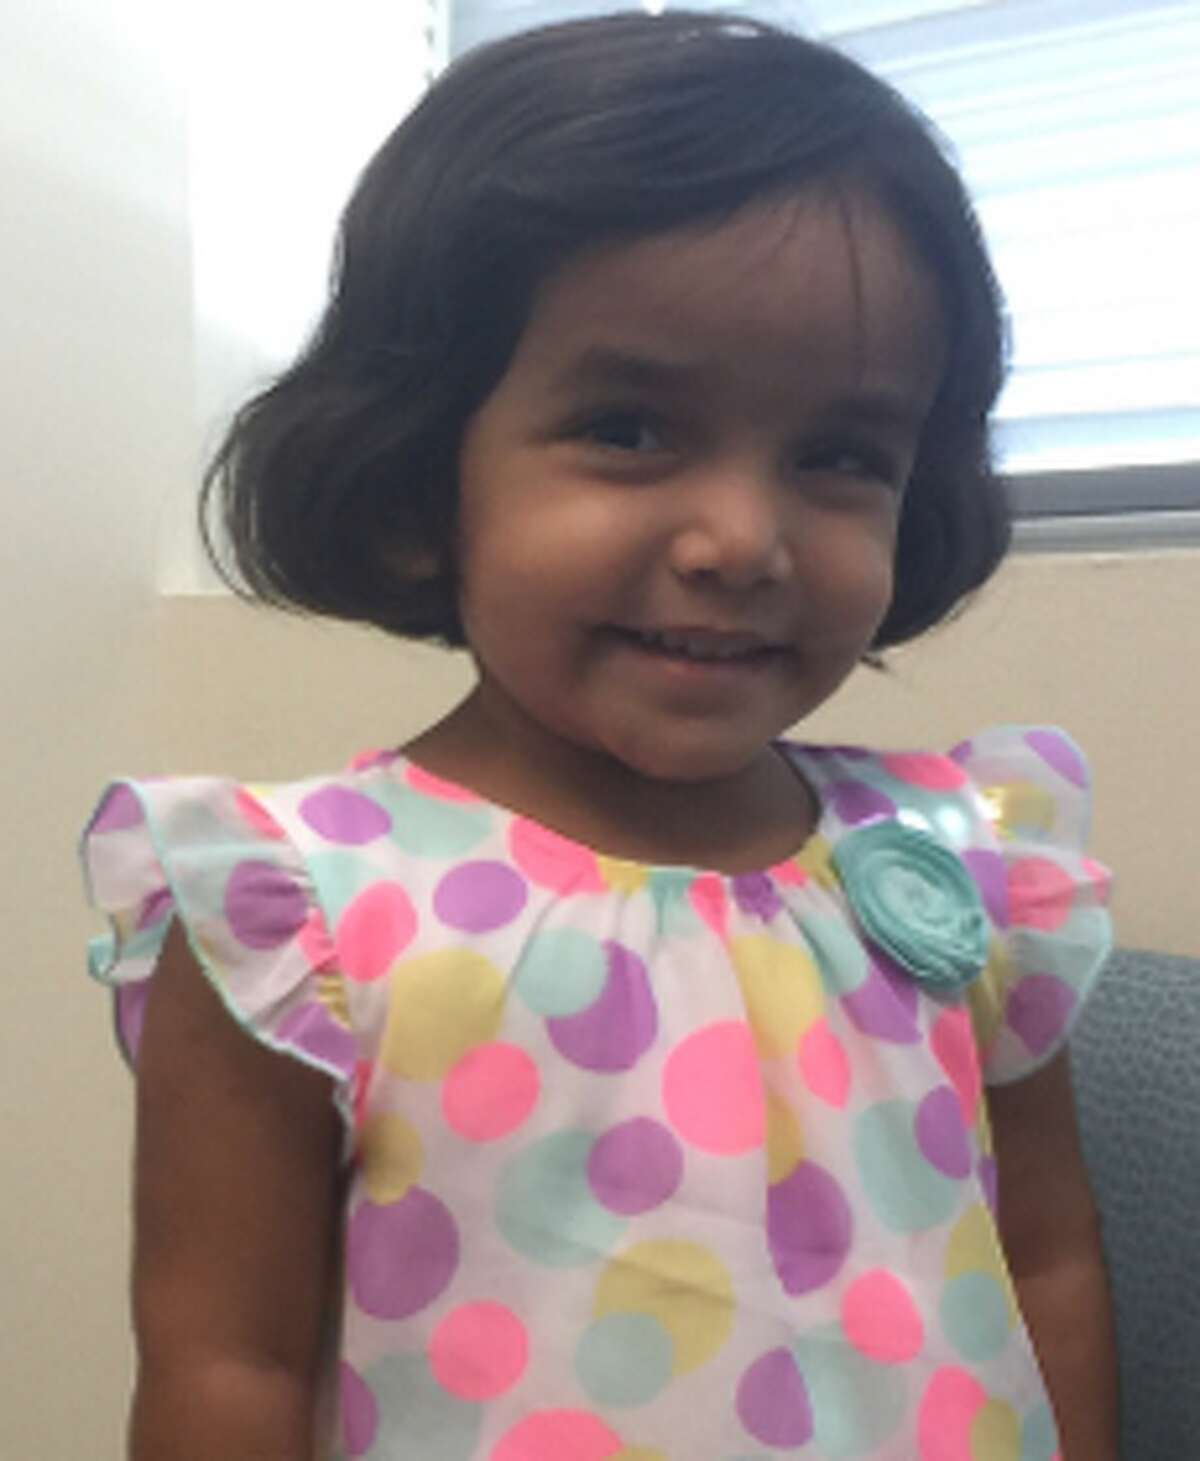 The 3-year-old girl Sherin Mathews went missing Saturday after he father allegedly sent her outside alone as punishment for not finishing her milk. Now her father has been arrested. Swipe through to see photos of other missing children in Texas this year.